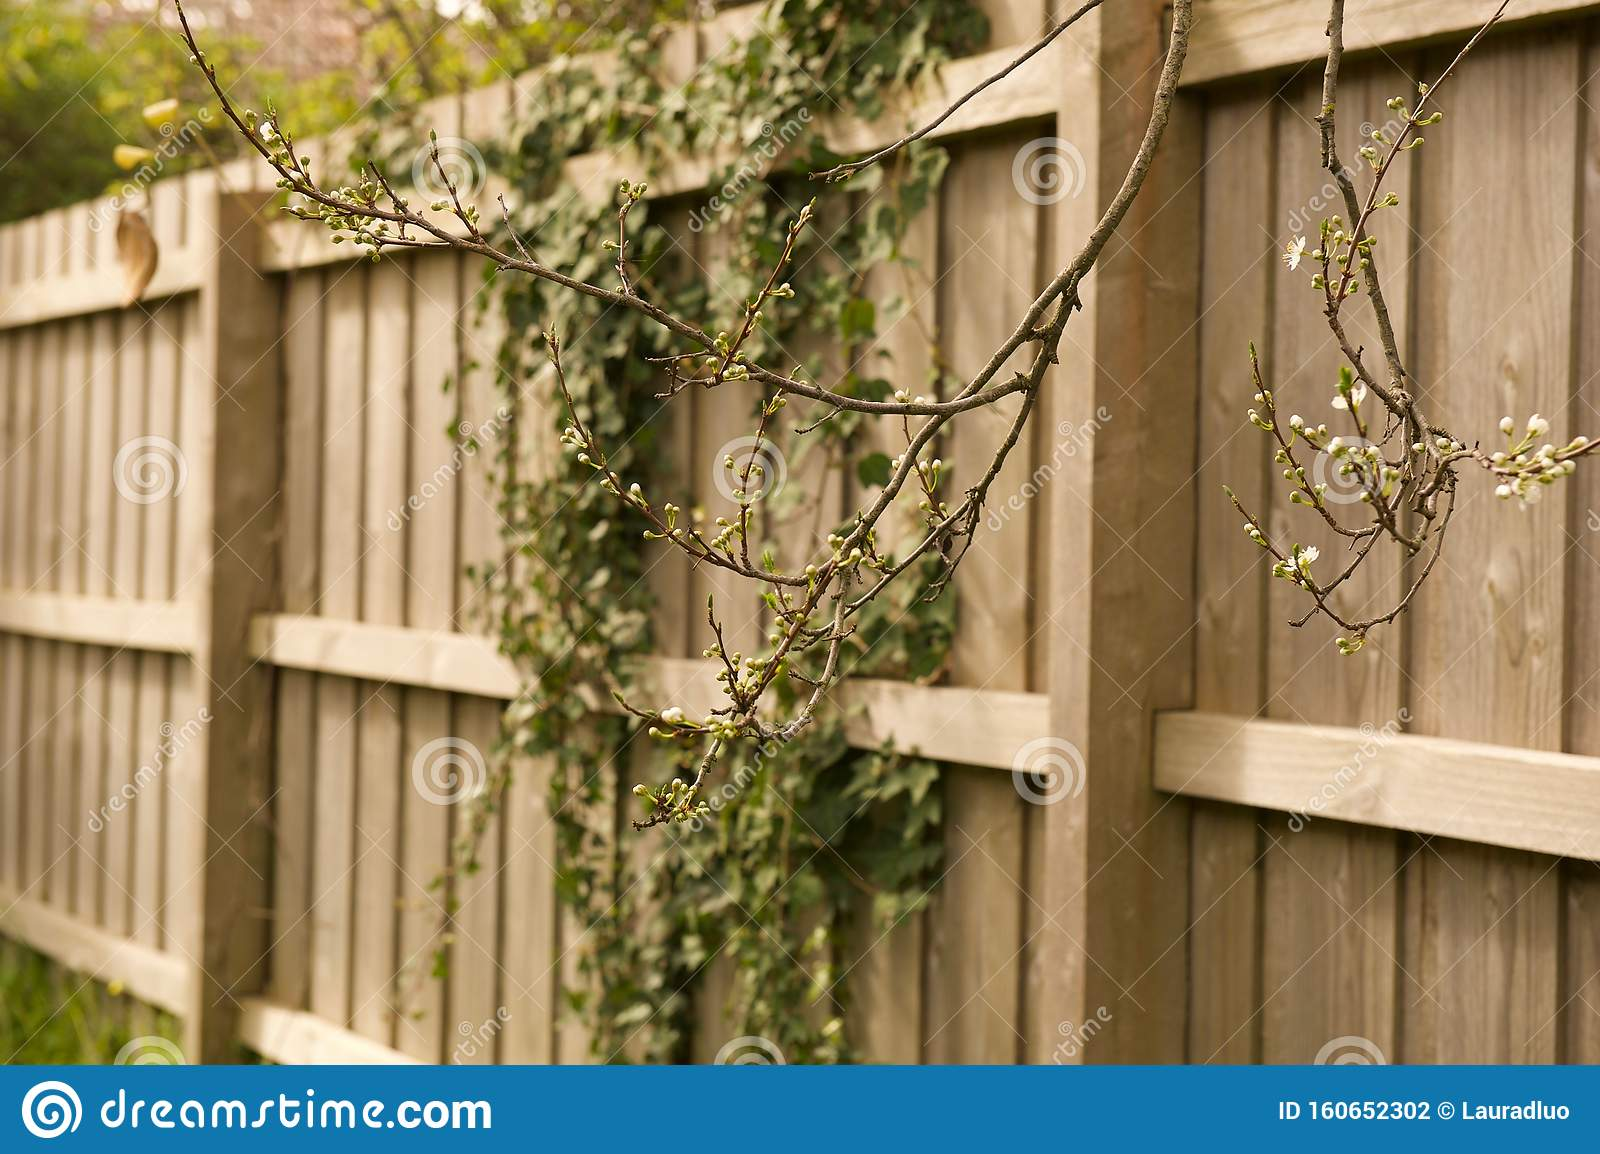 Fence Wallpaper Background With Climbing Vines Stock Photo Image